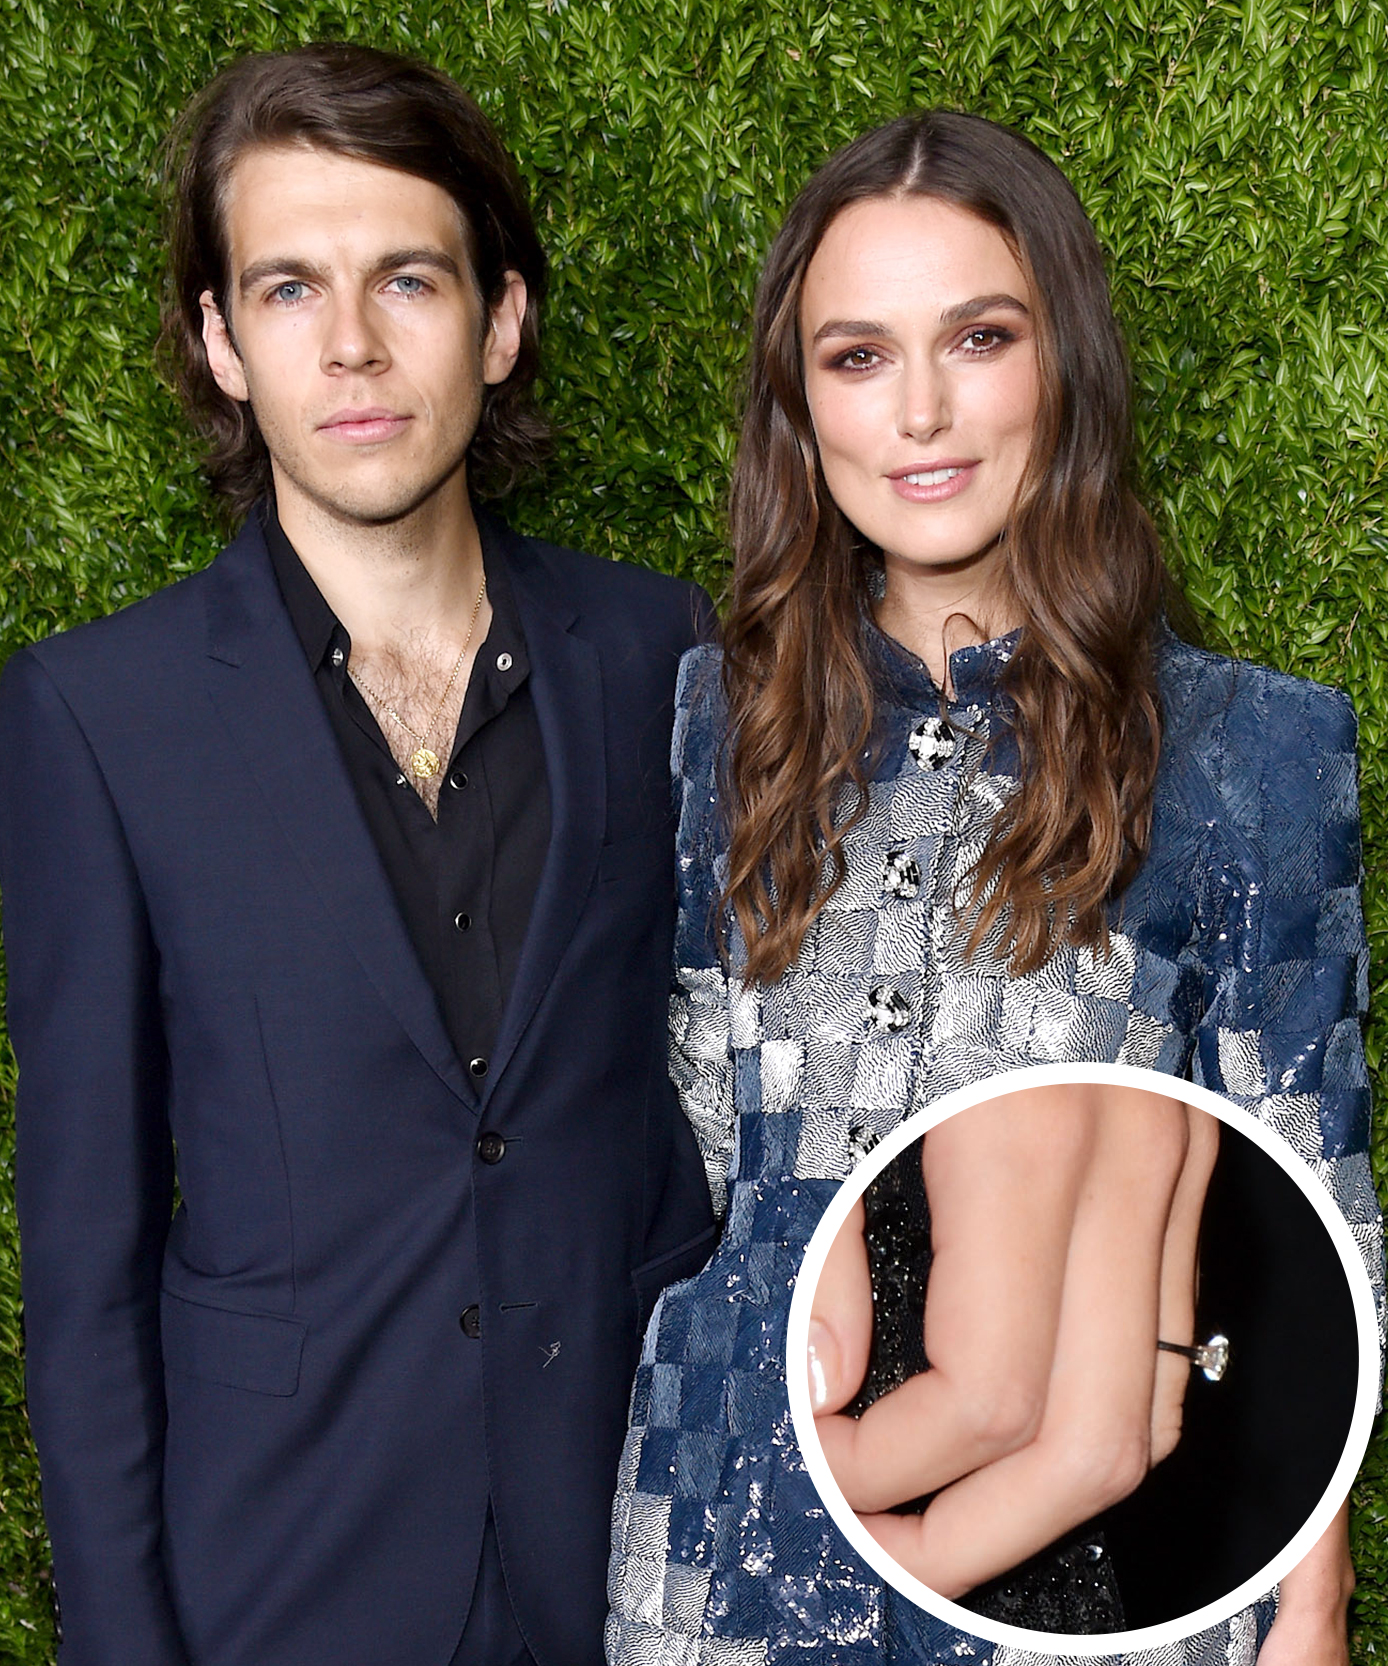 <p>Keira Knightley and James Righton</p>